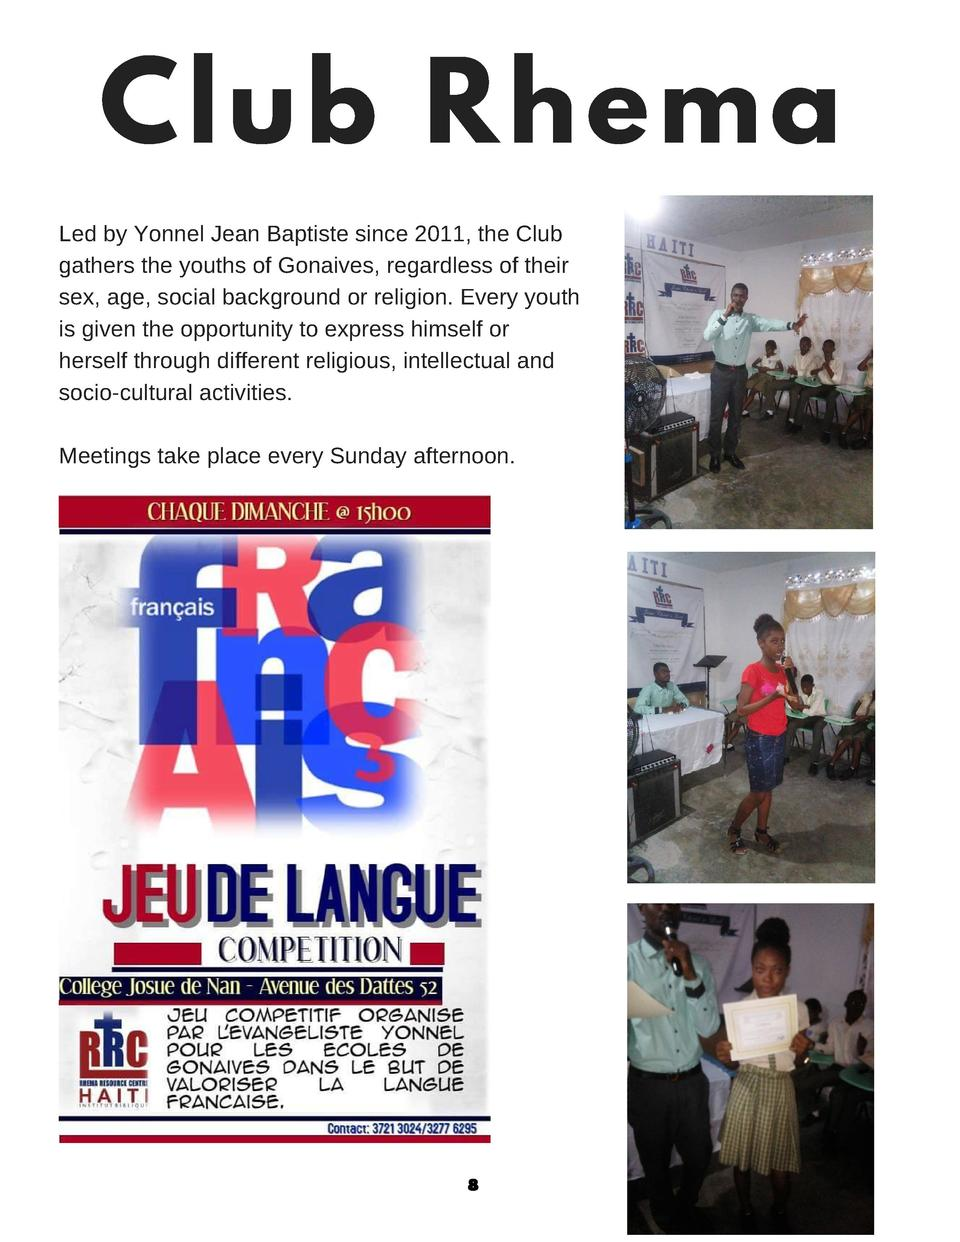 Club Rhema Led by Yonnel Jean Baptiste since 2011, the Club gathers the youths of Gonaives, regardless of their sex, age, ...